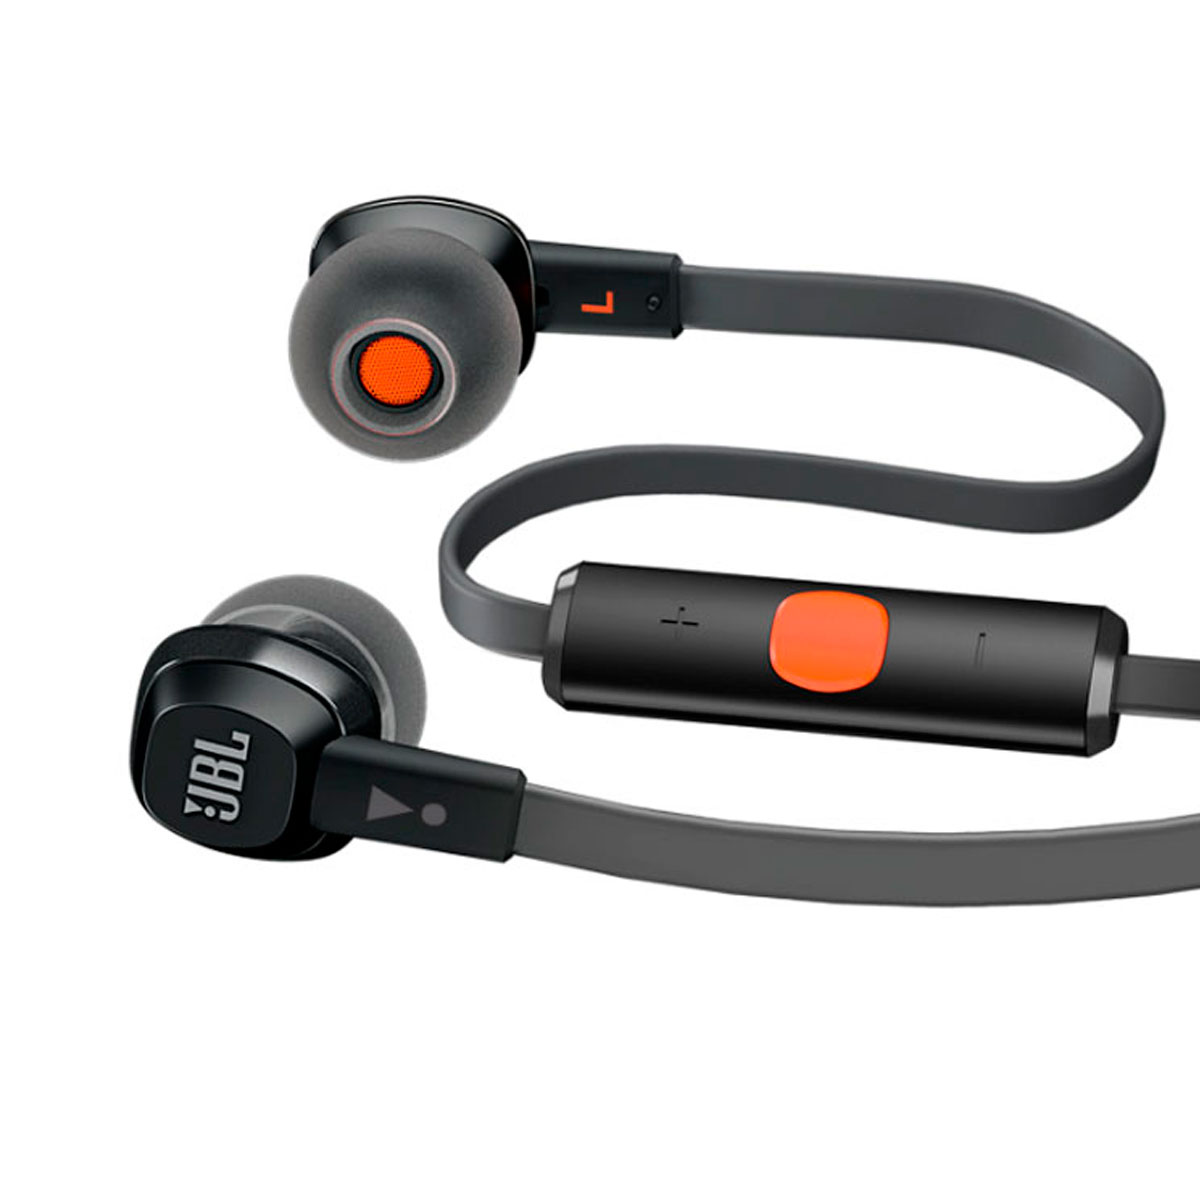 J22i - Fone de Ouvido In-ear Preto c/ Microfone p/ iPhone / iPad / iPod J 22i - JBL